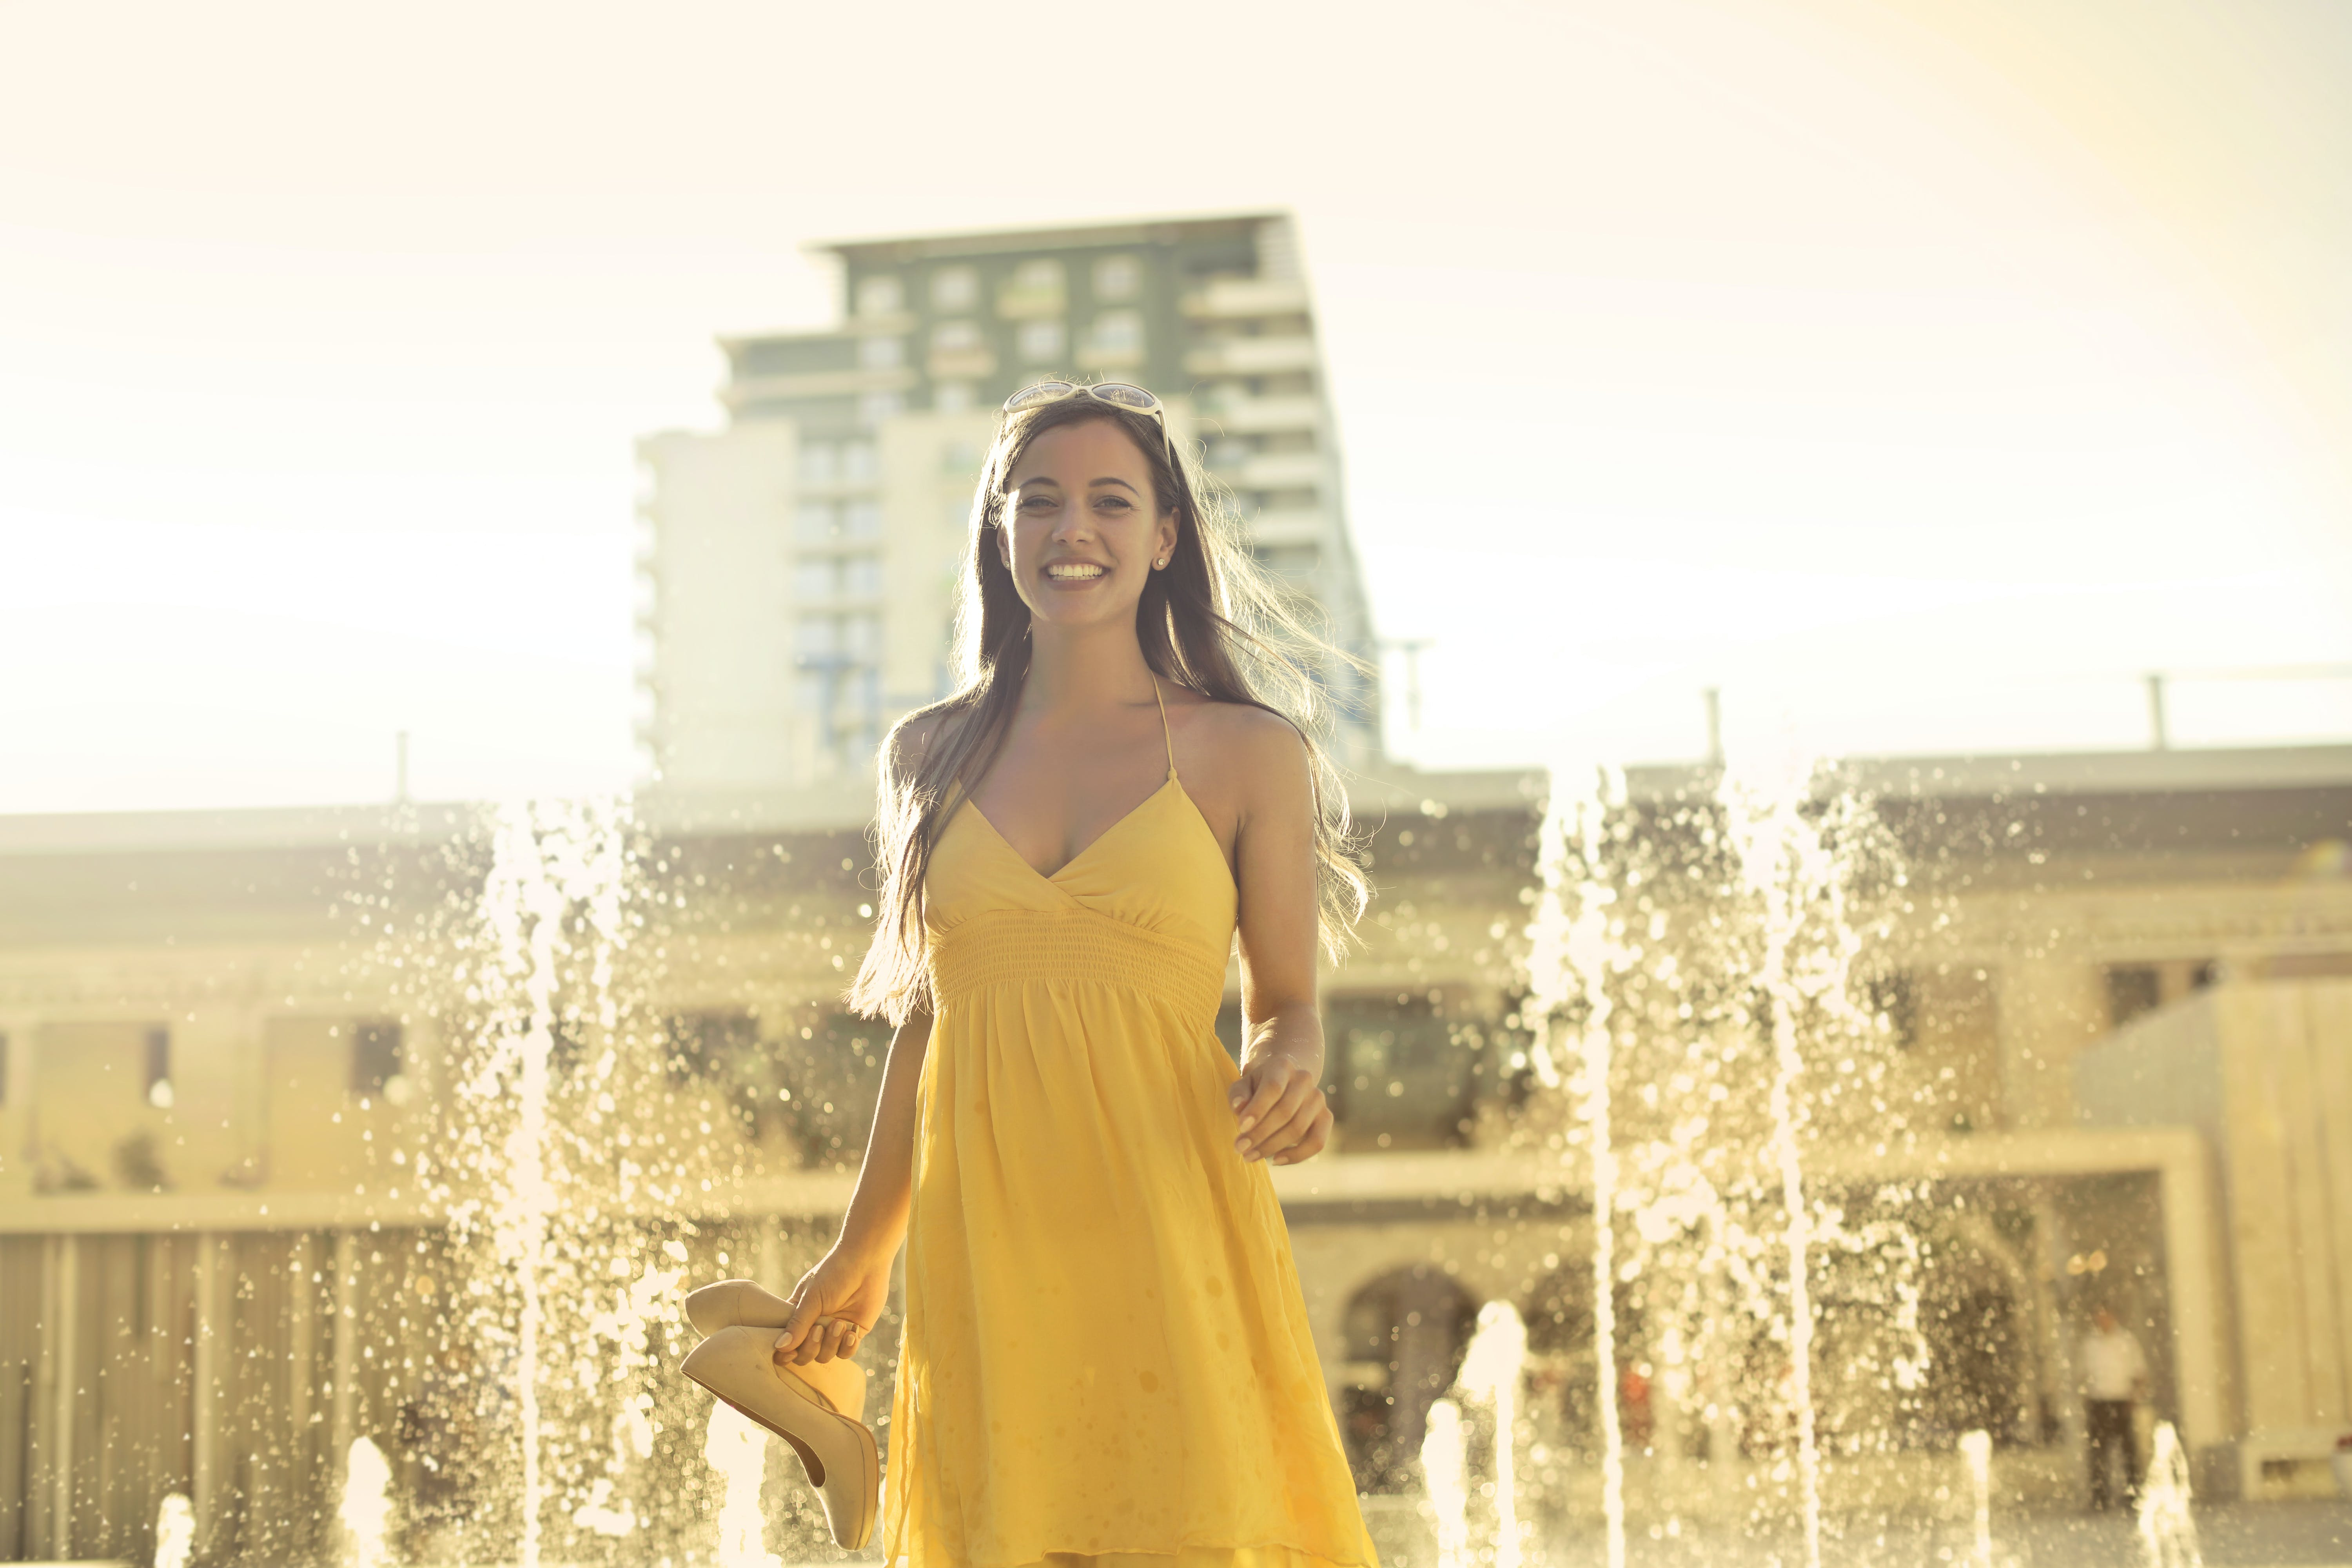 Woman Wears Yellow Spaghetti Strap Dress Stands Near Water Fountain